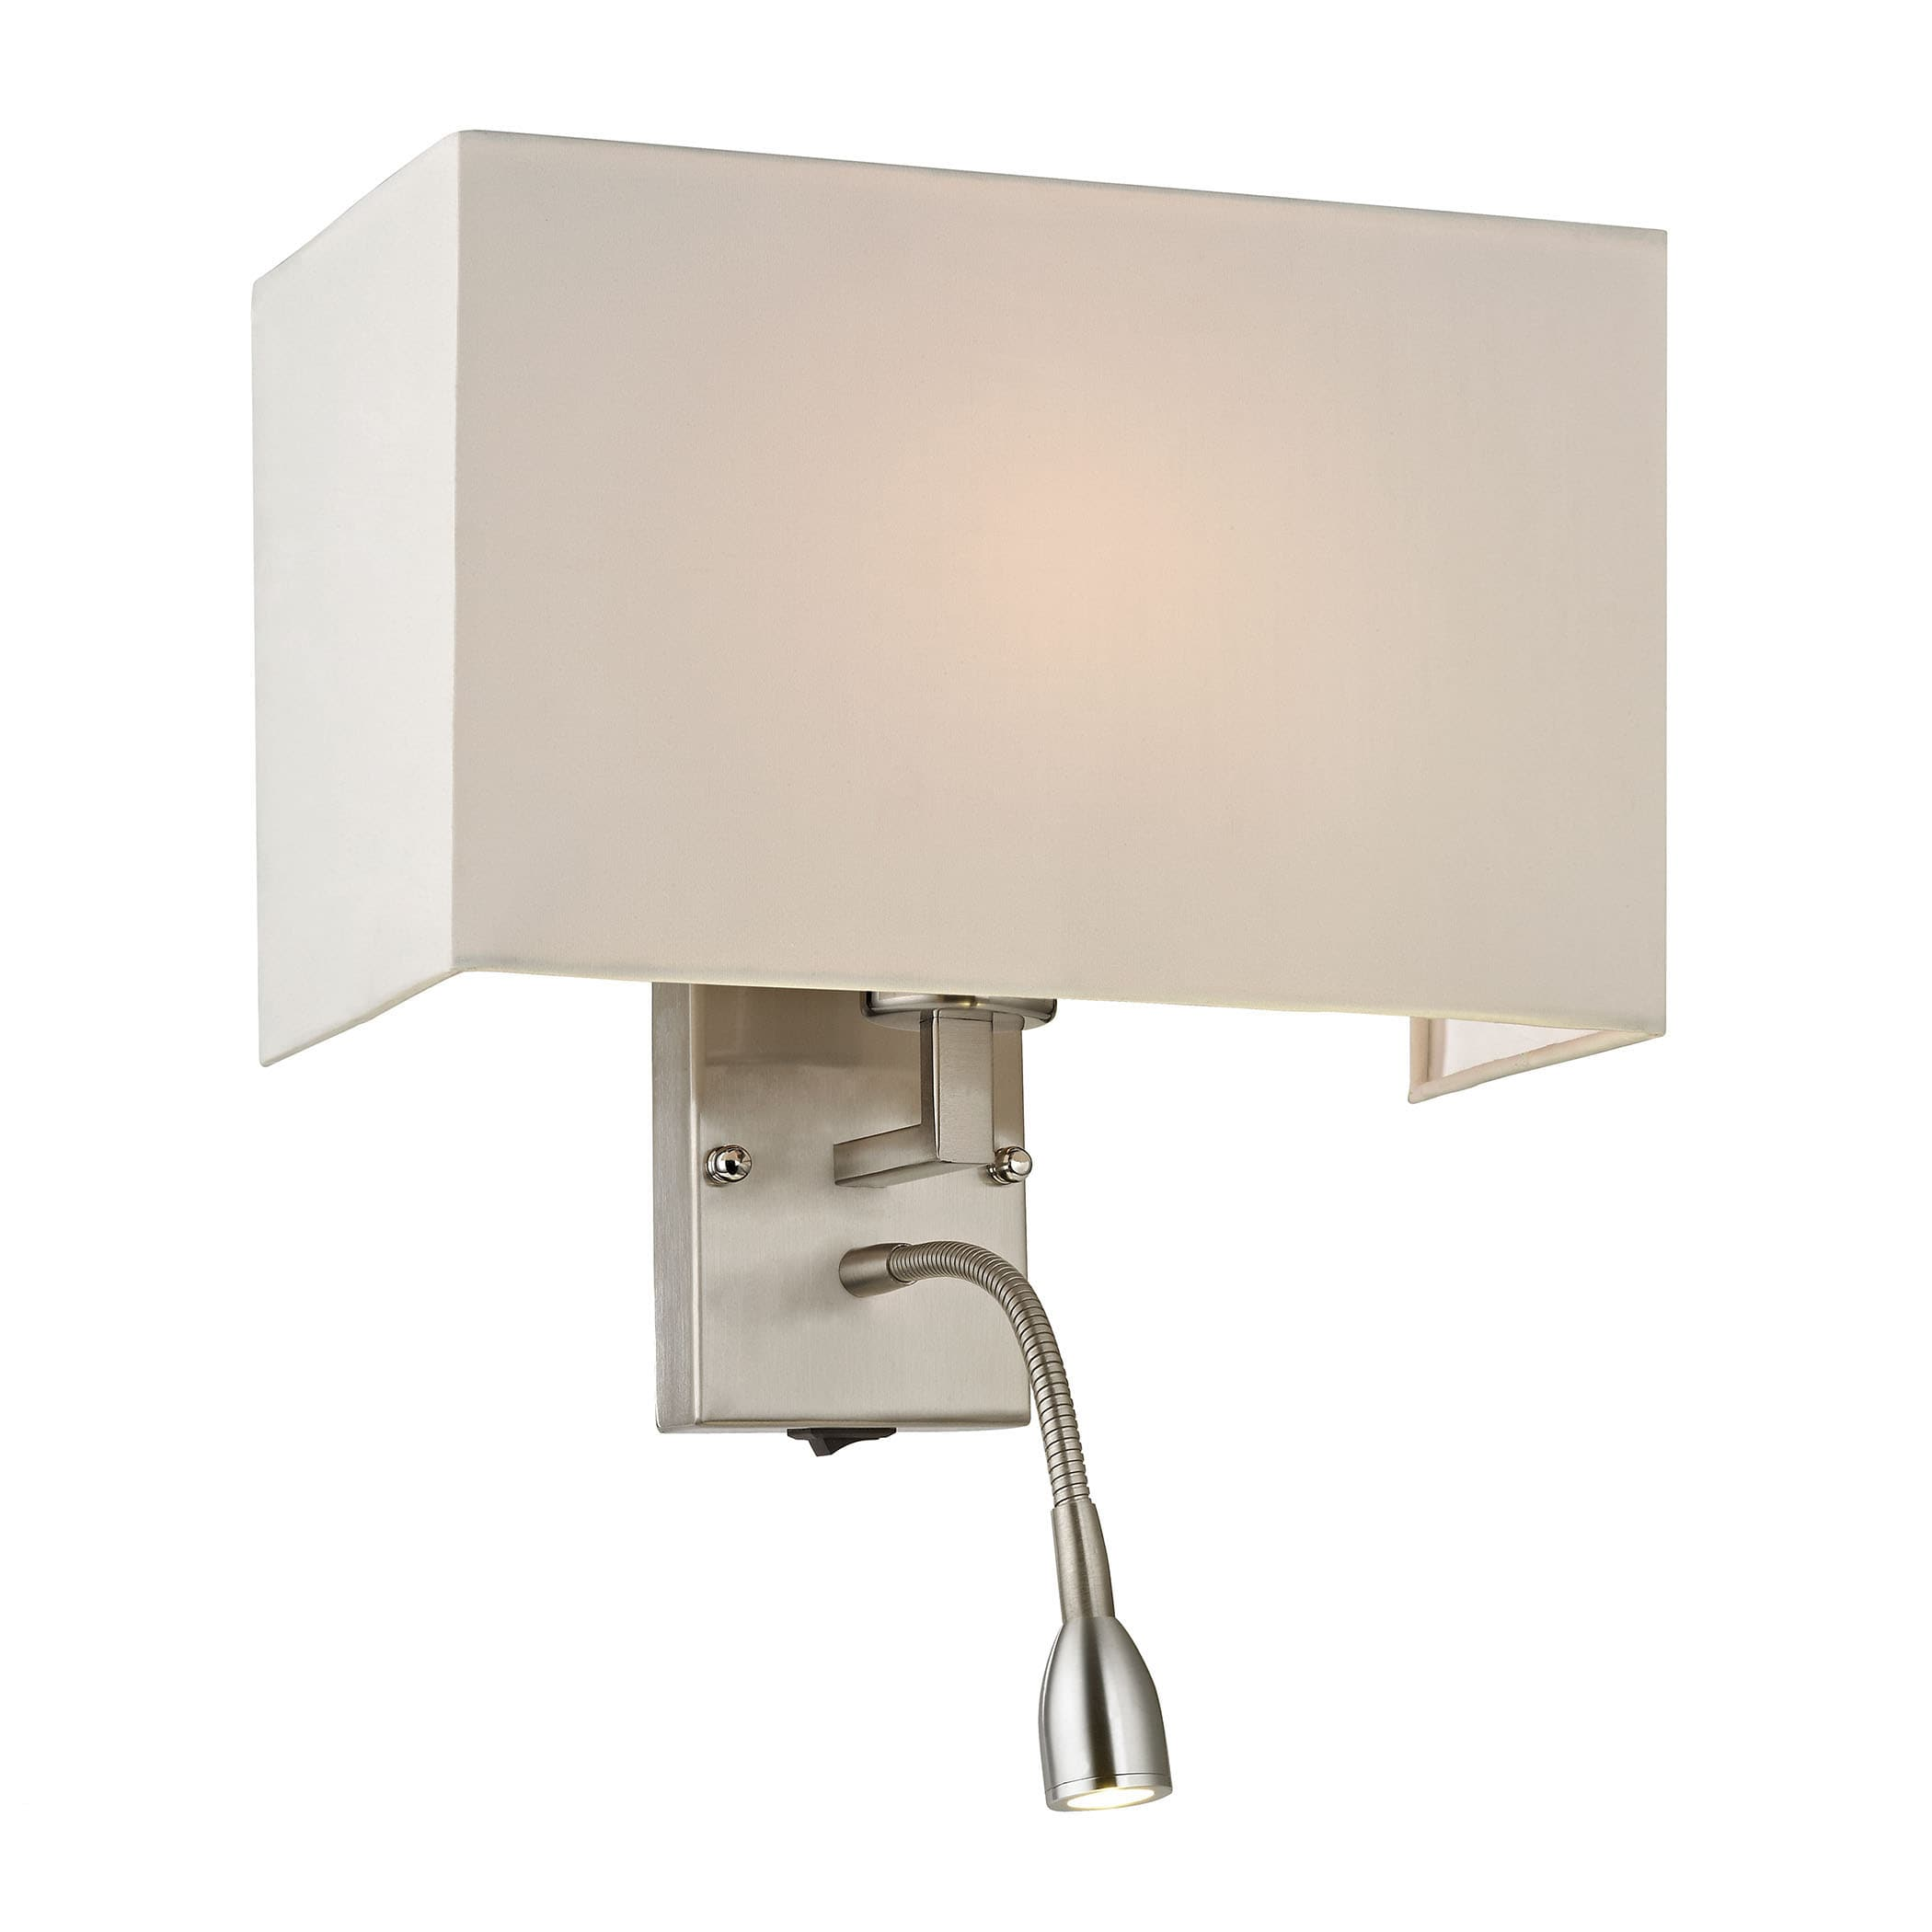 Image of: Elk Lighting 17154 2 Led Brushed Nickel Dixon 2 Light Led Wall Sconce Lightingdirect Com